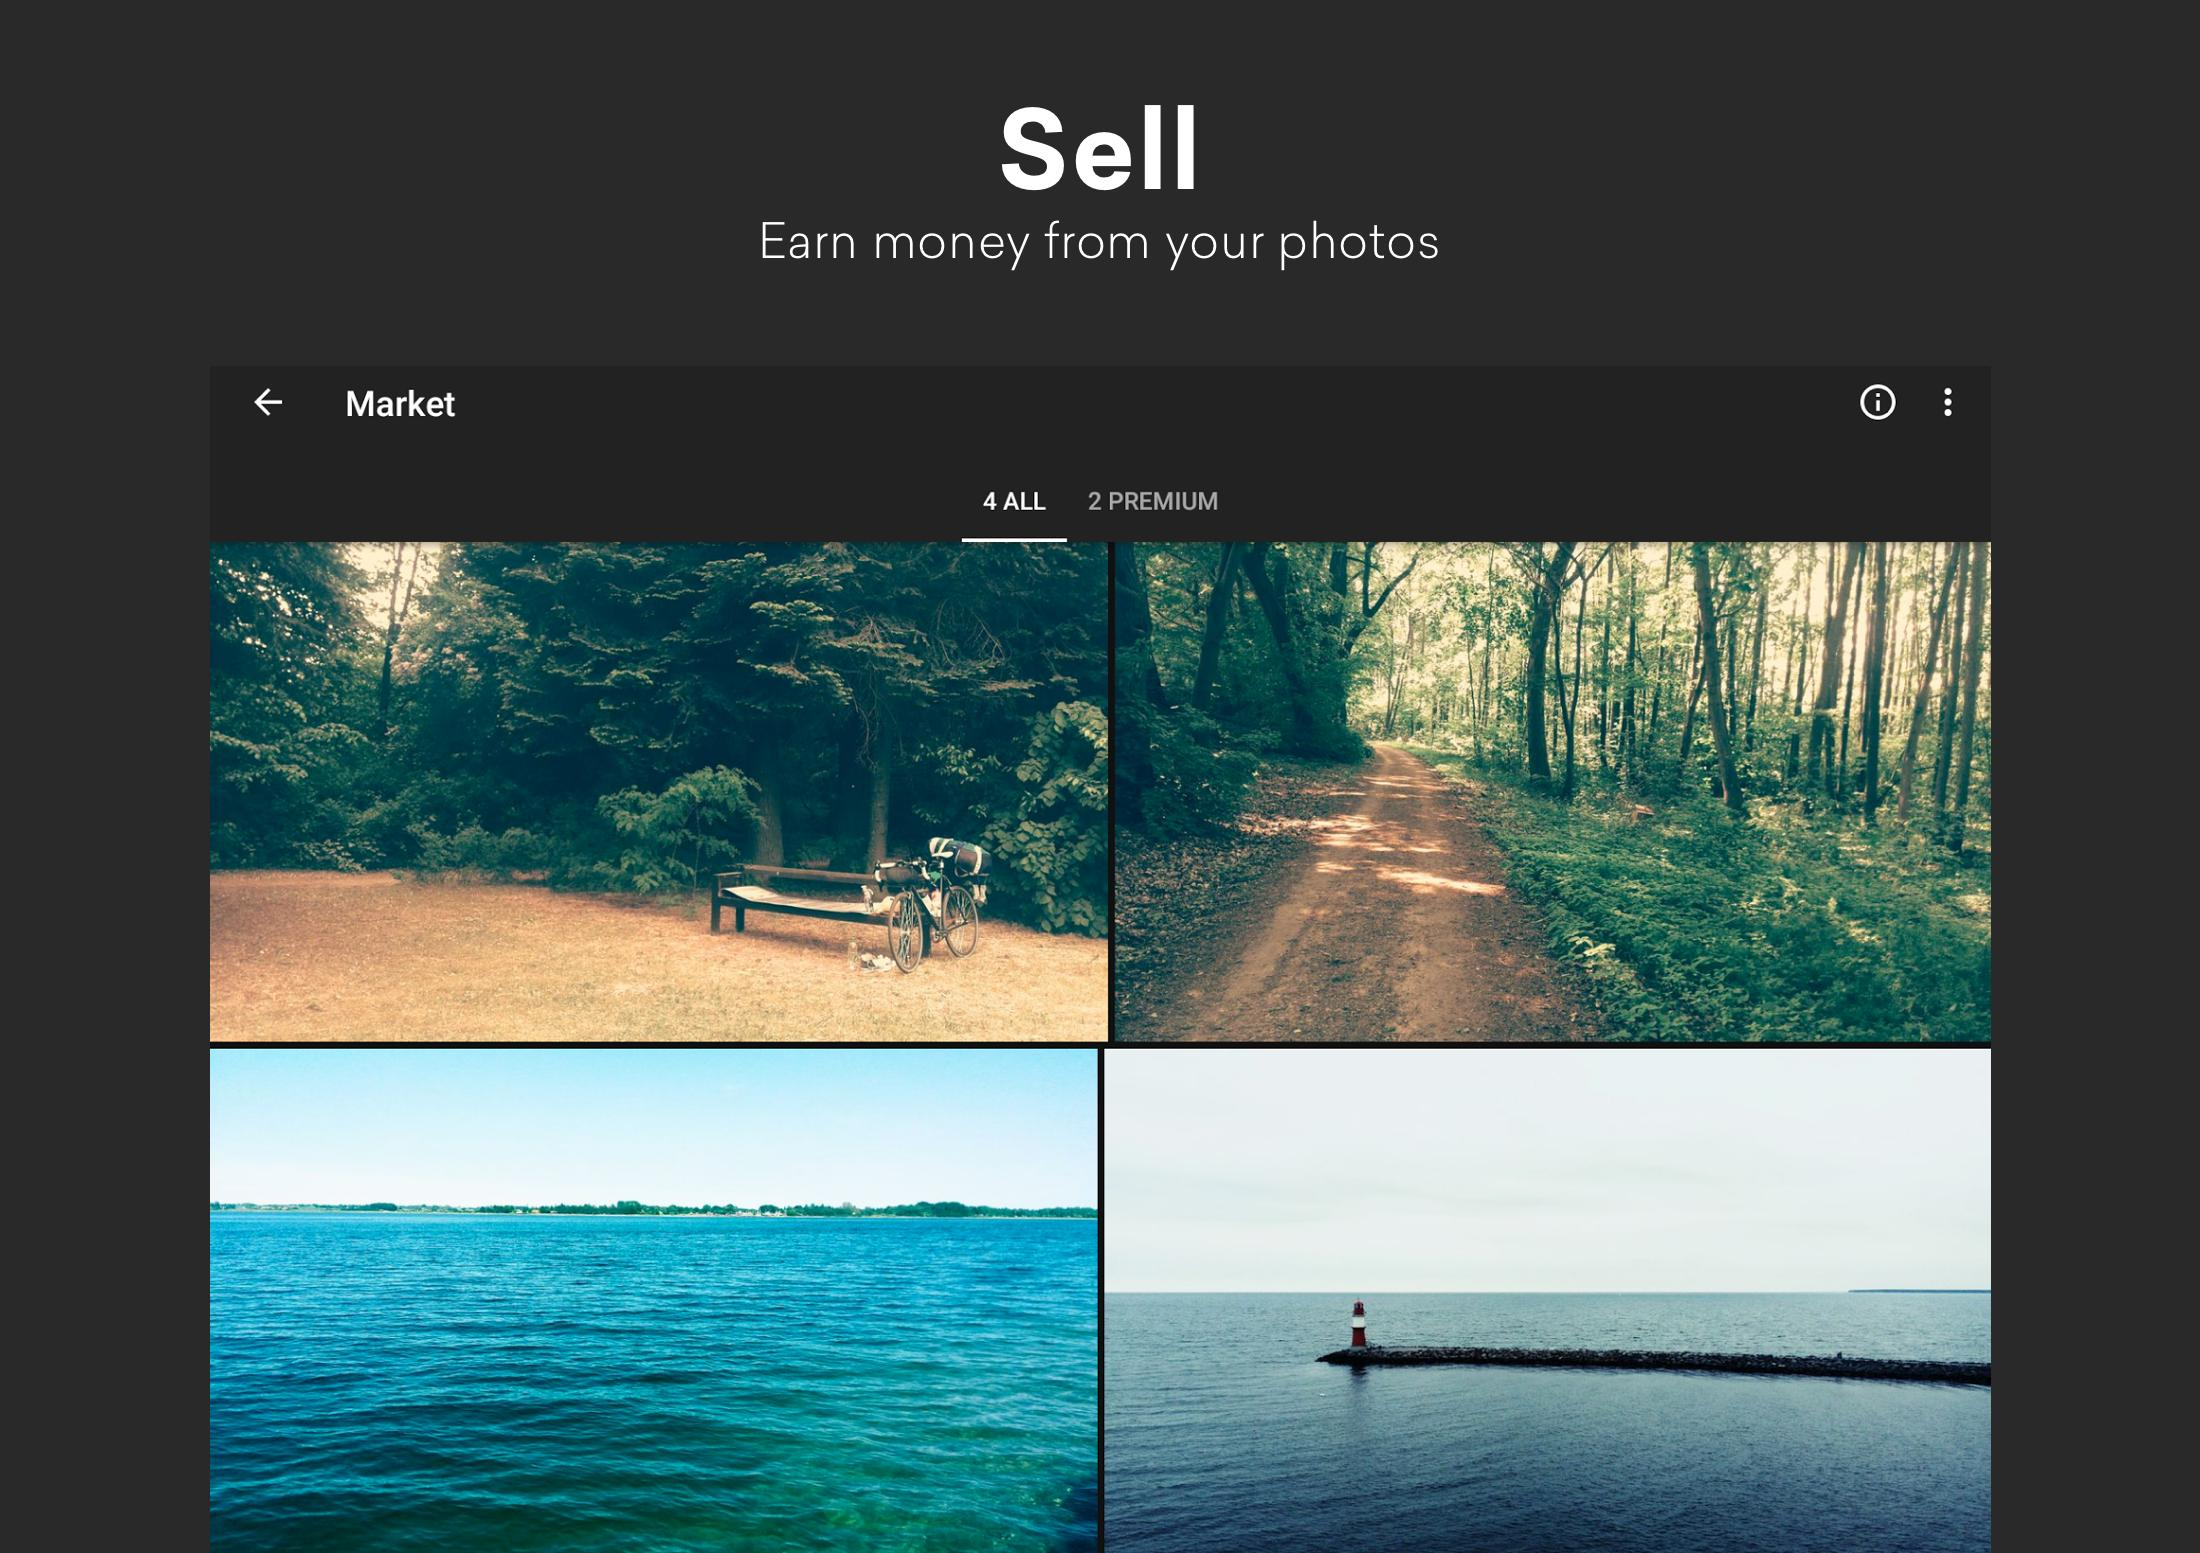 EyeEm Free Photo App For Sharing & Selling Images 8.1 Screenshot 8